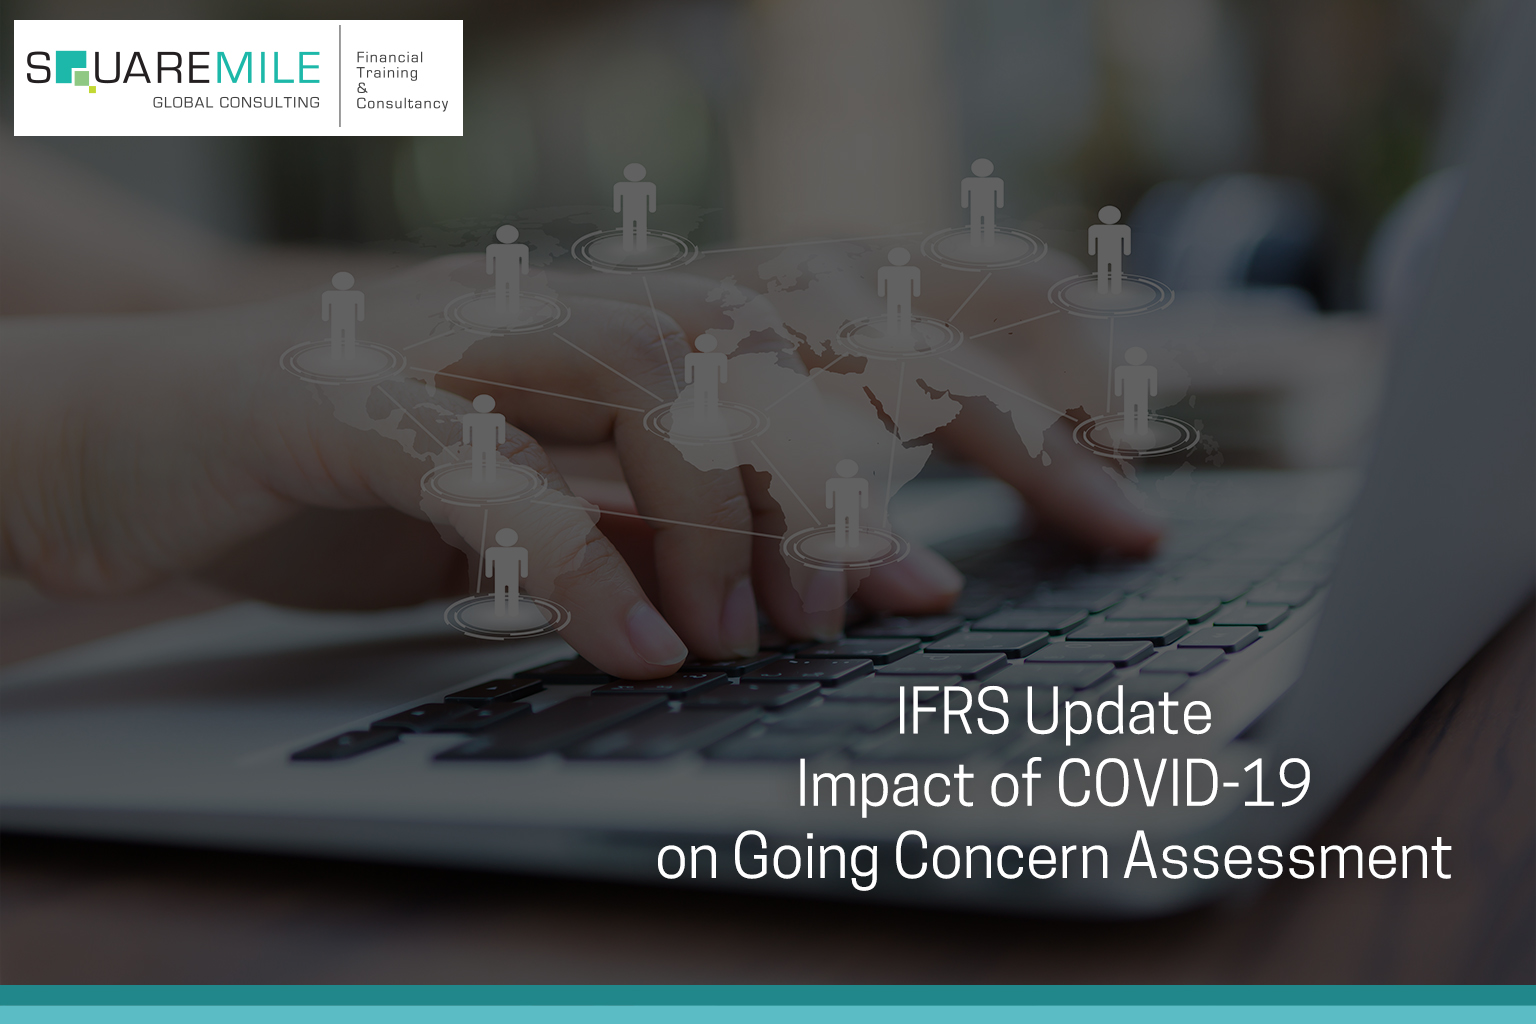 IFRS Update: Impact of COVID-19 on Going Concern Assessment